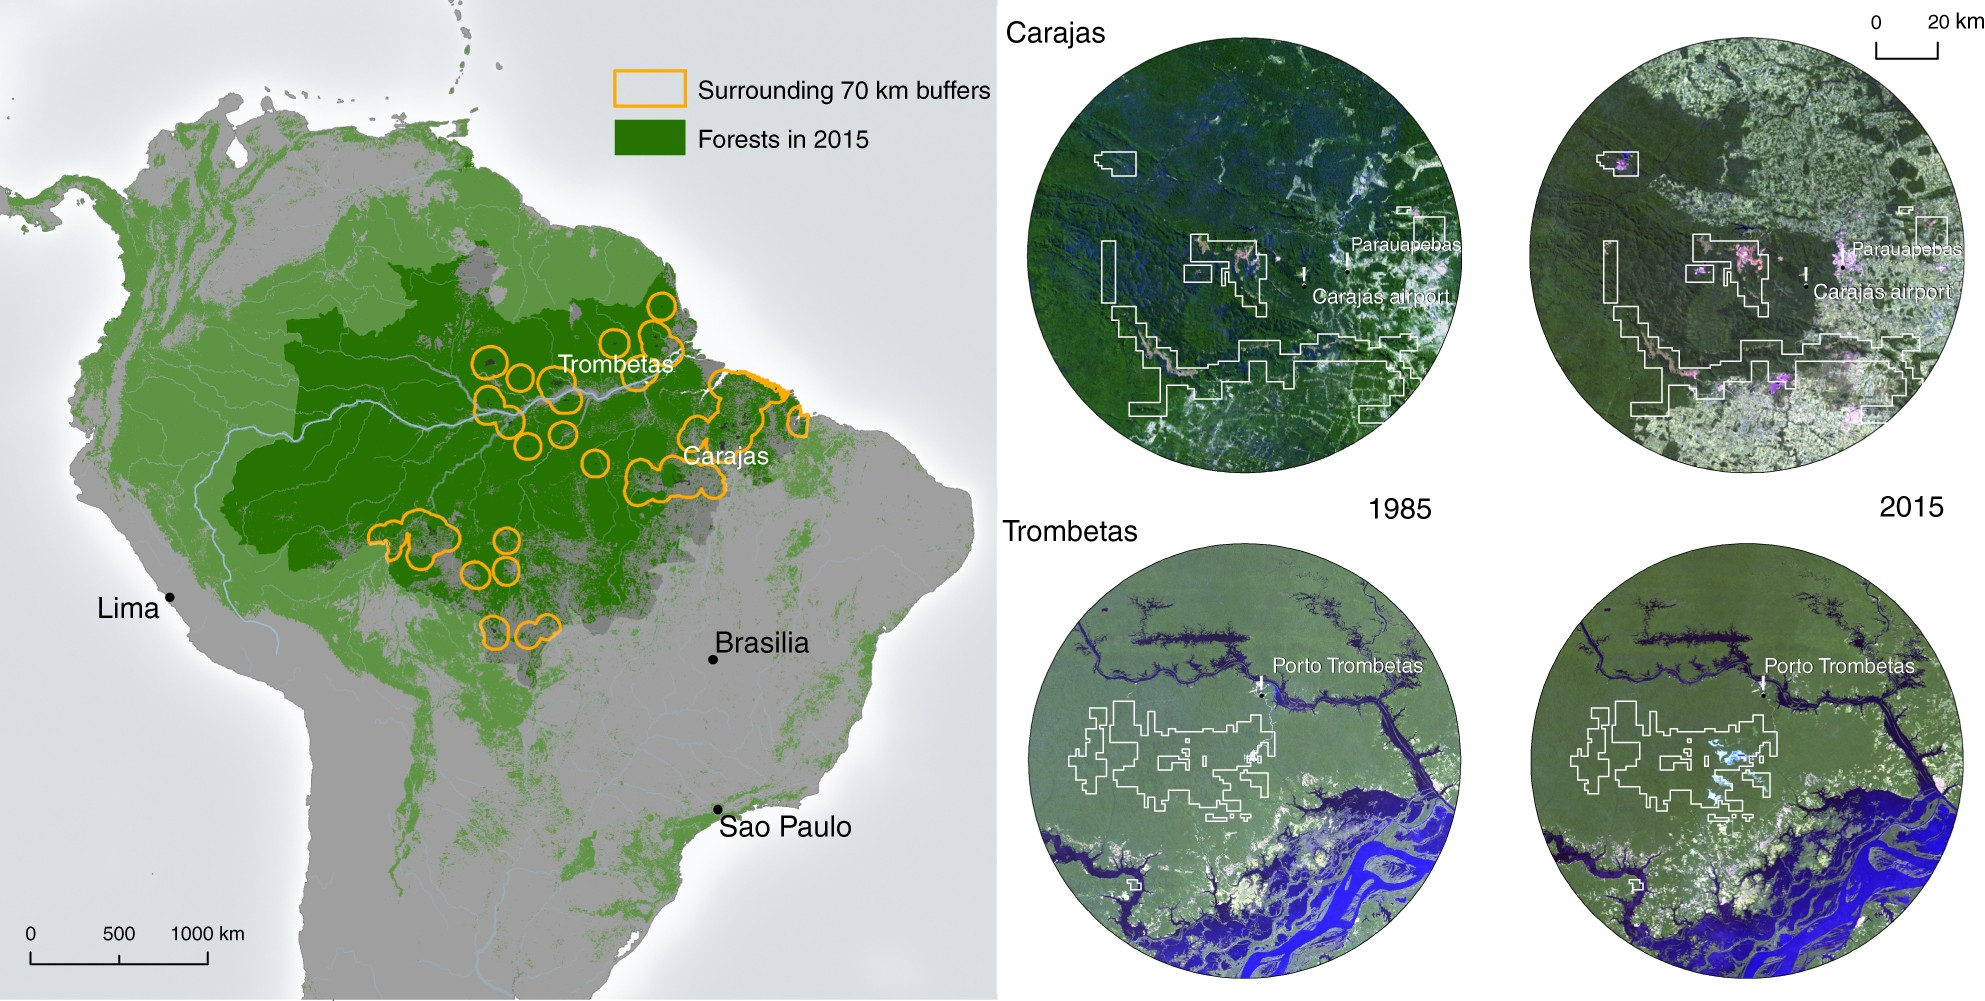 Mining Drives Extensive Deforestation In The Brazilian Amazon - Nature